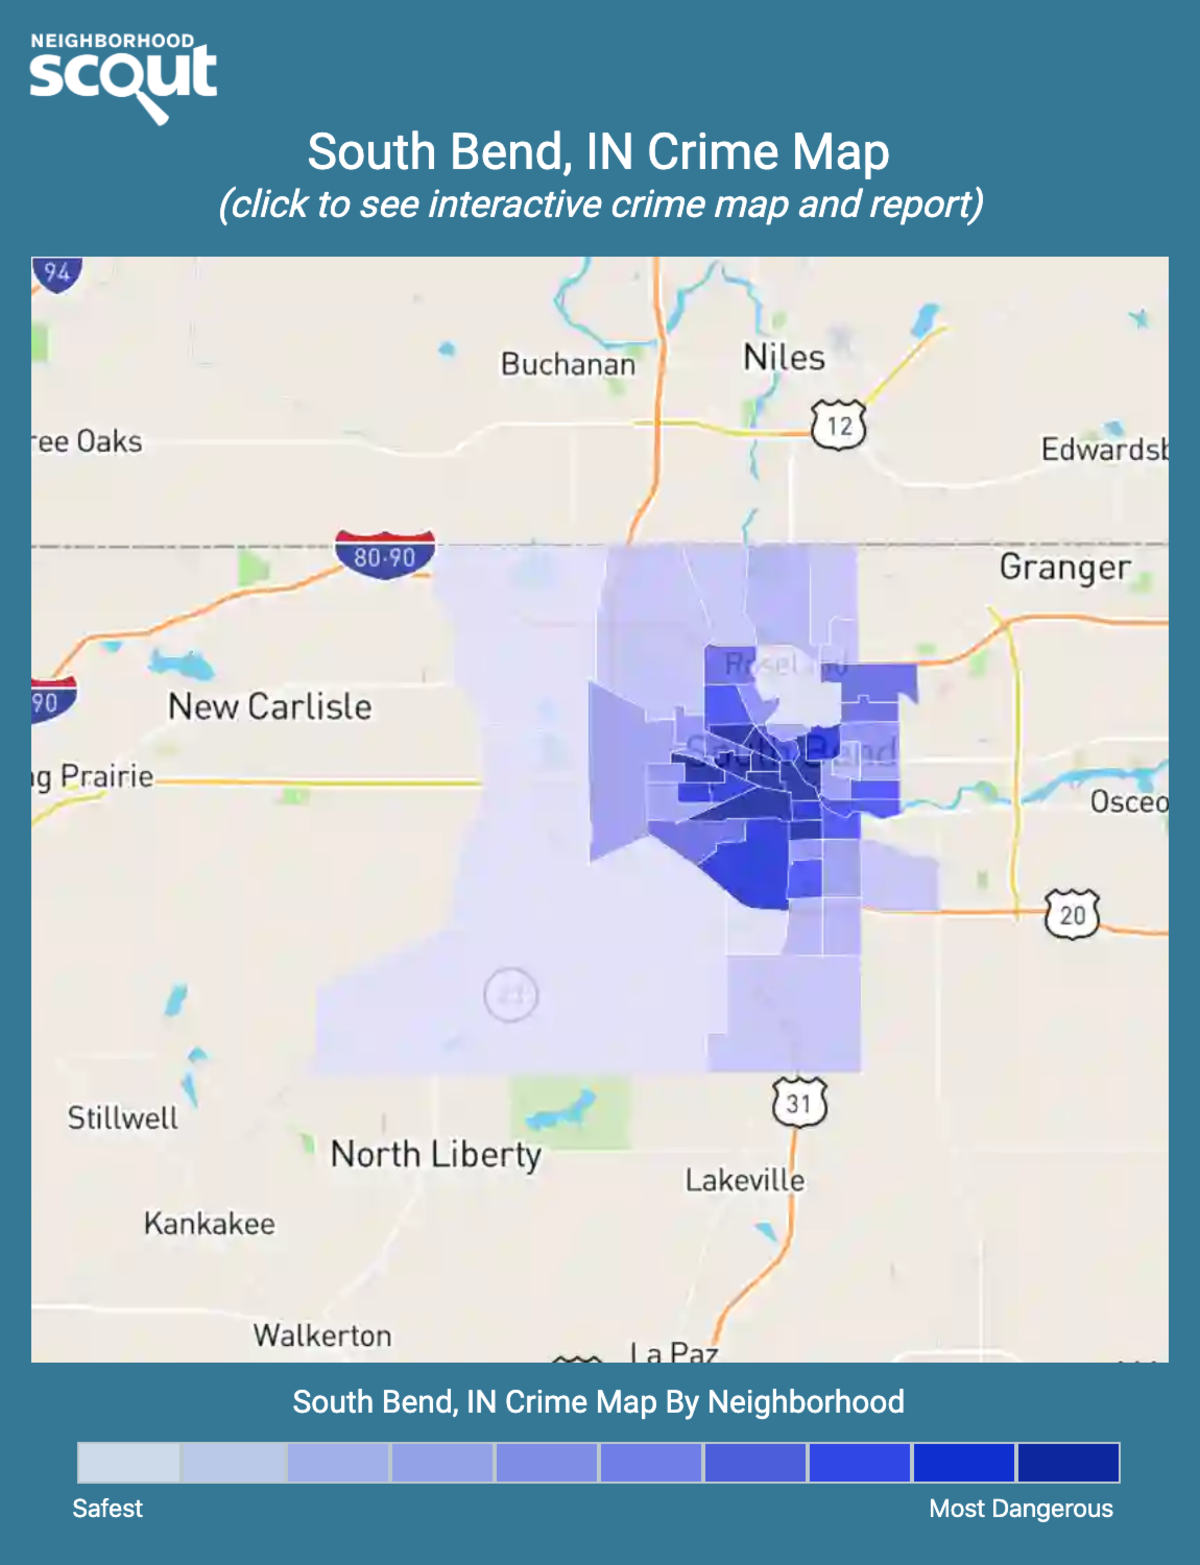 South Bend, Indiana crime map